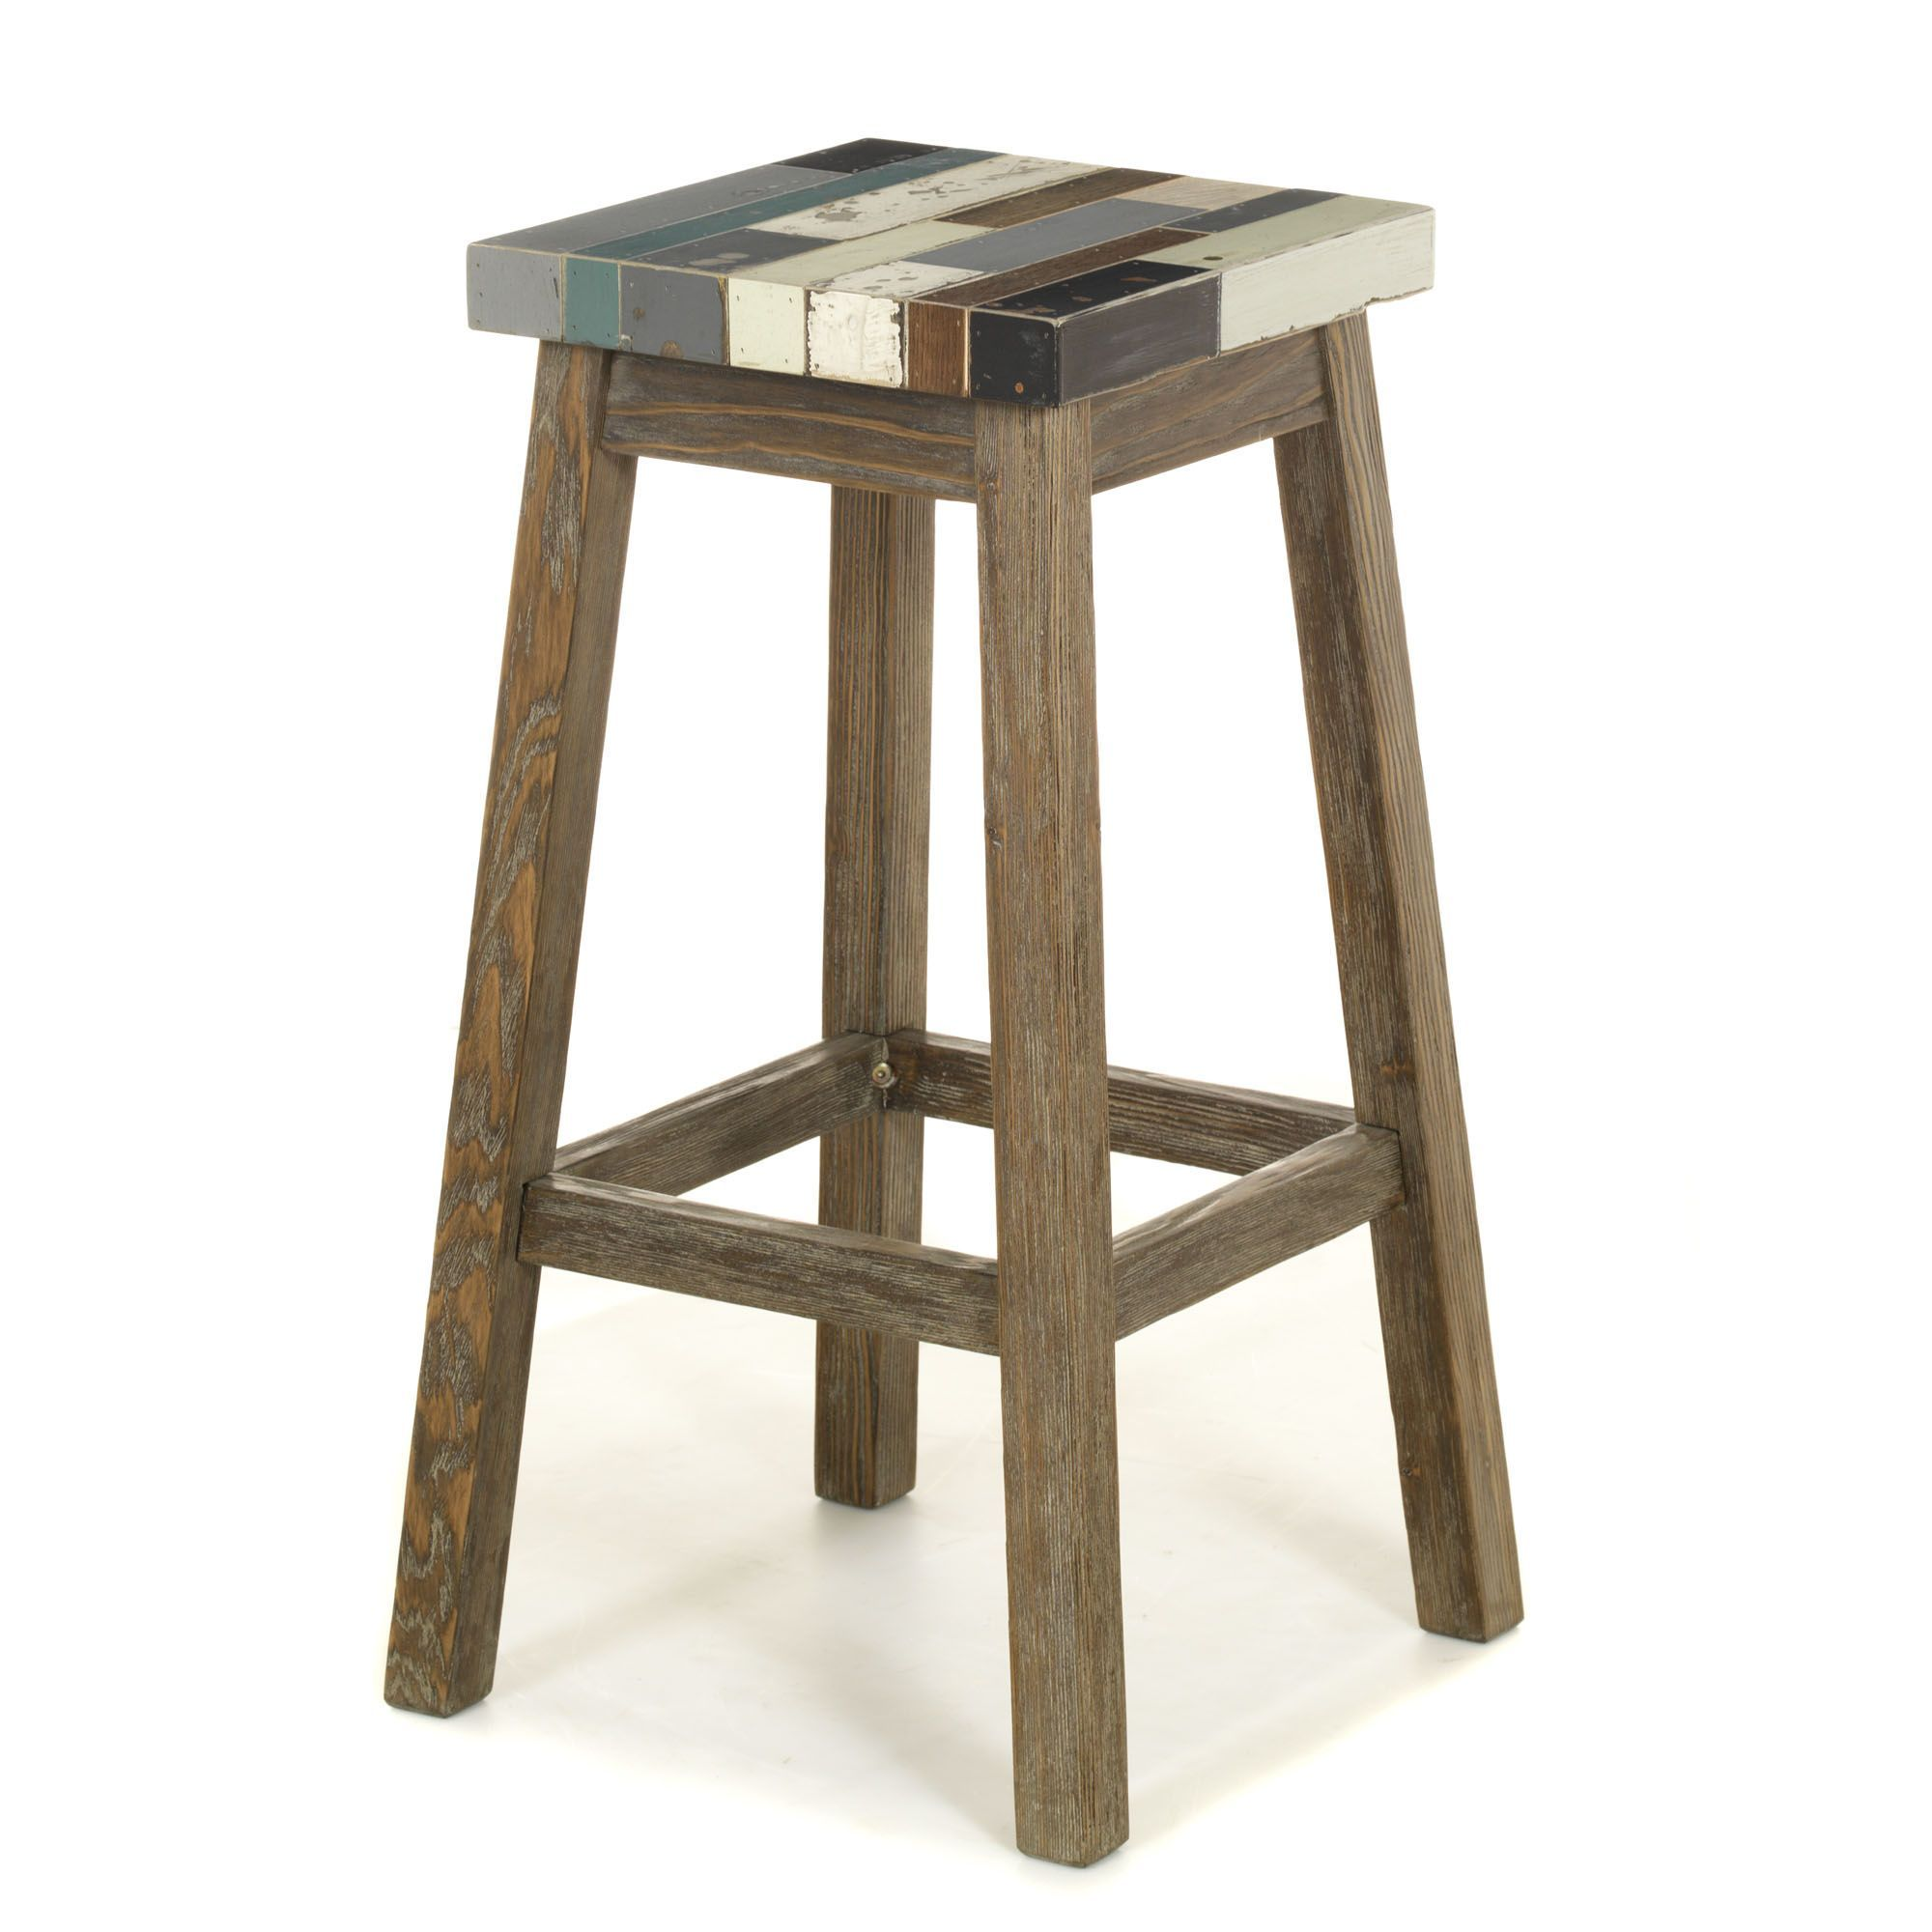 Table De Bar+4 Tabourets Tabouret Haut De Bar Naturel Multicolore Manaka Les